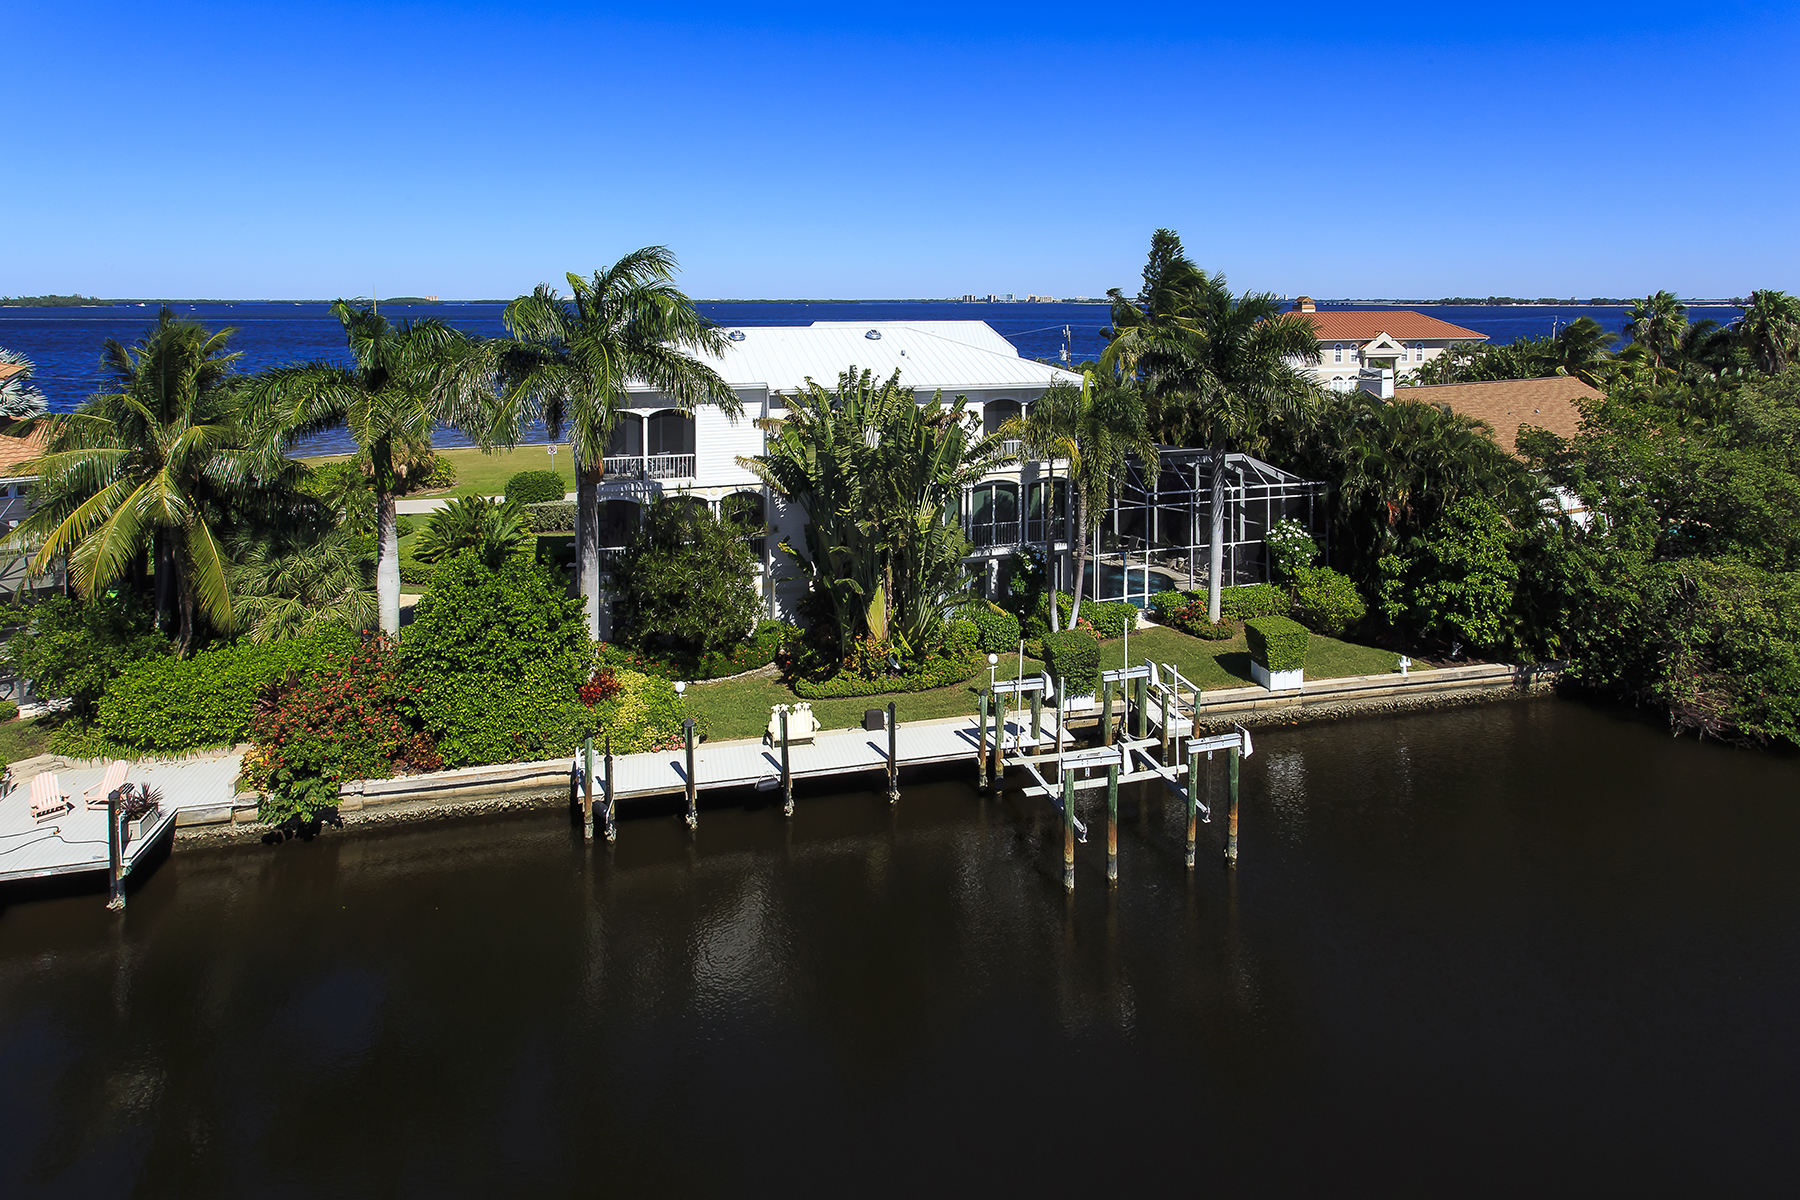 Additional photo for property listing at 1561 San Carlos Bay Dr , Sanibel, FL 33957 1561  San Carlos Bay Dr,  Sanibel, Florida 33957 United States